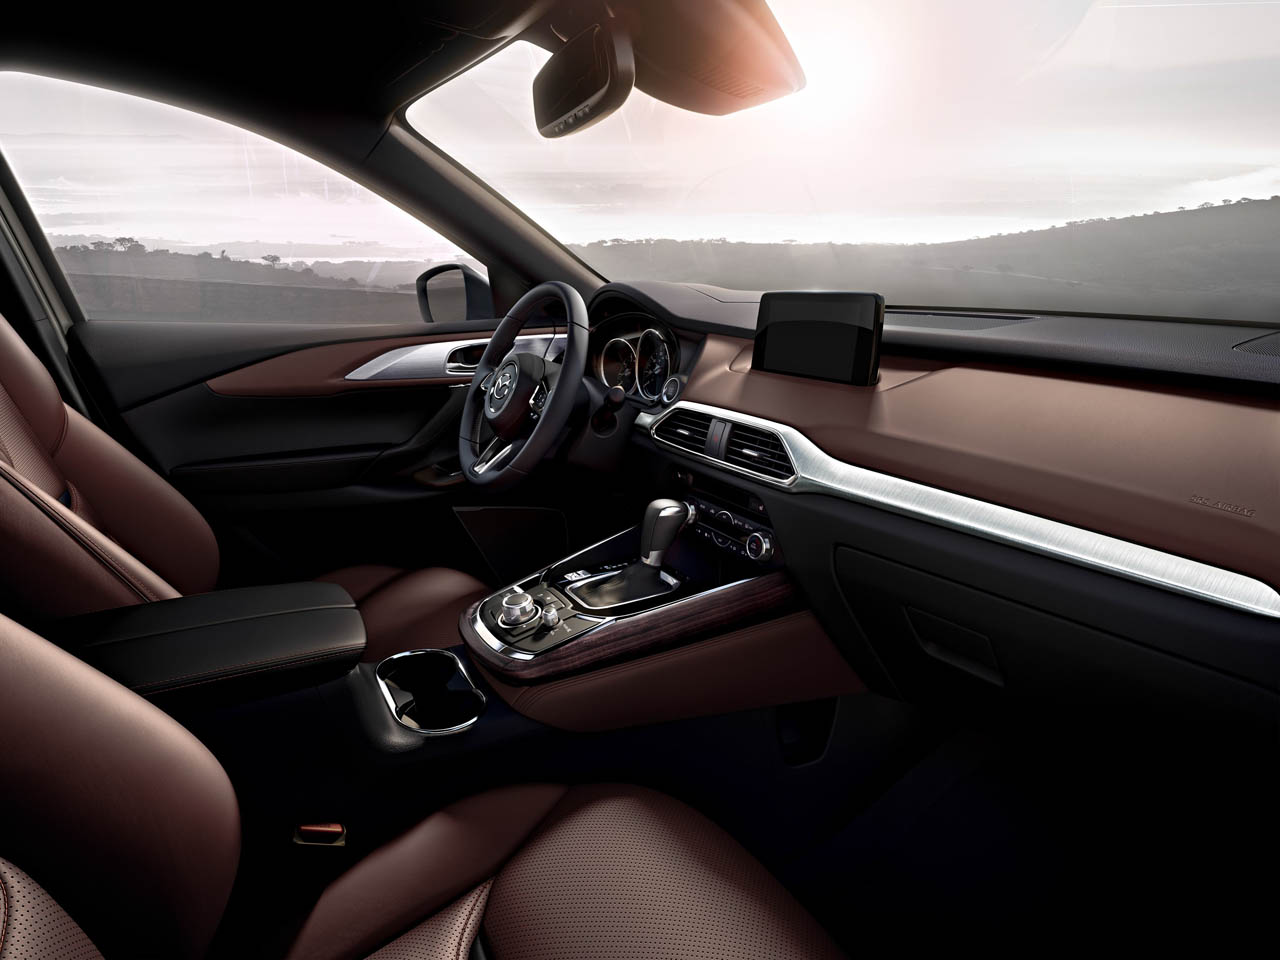 mazda_cx-9_2015_interior_05_screen